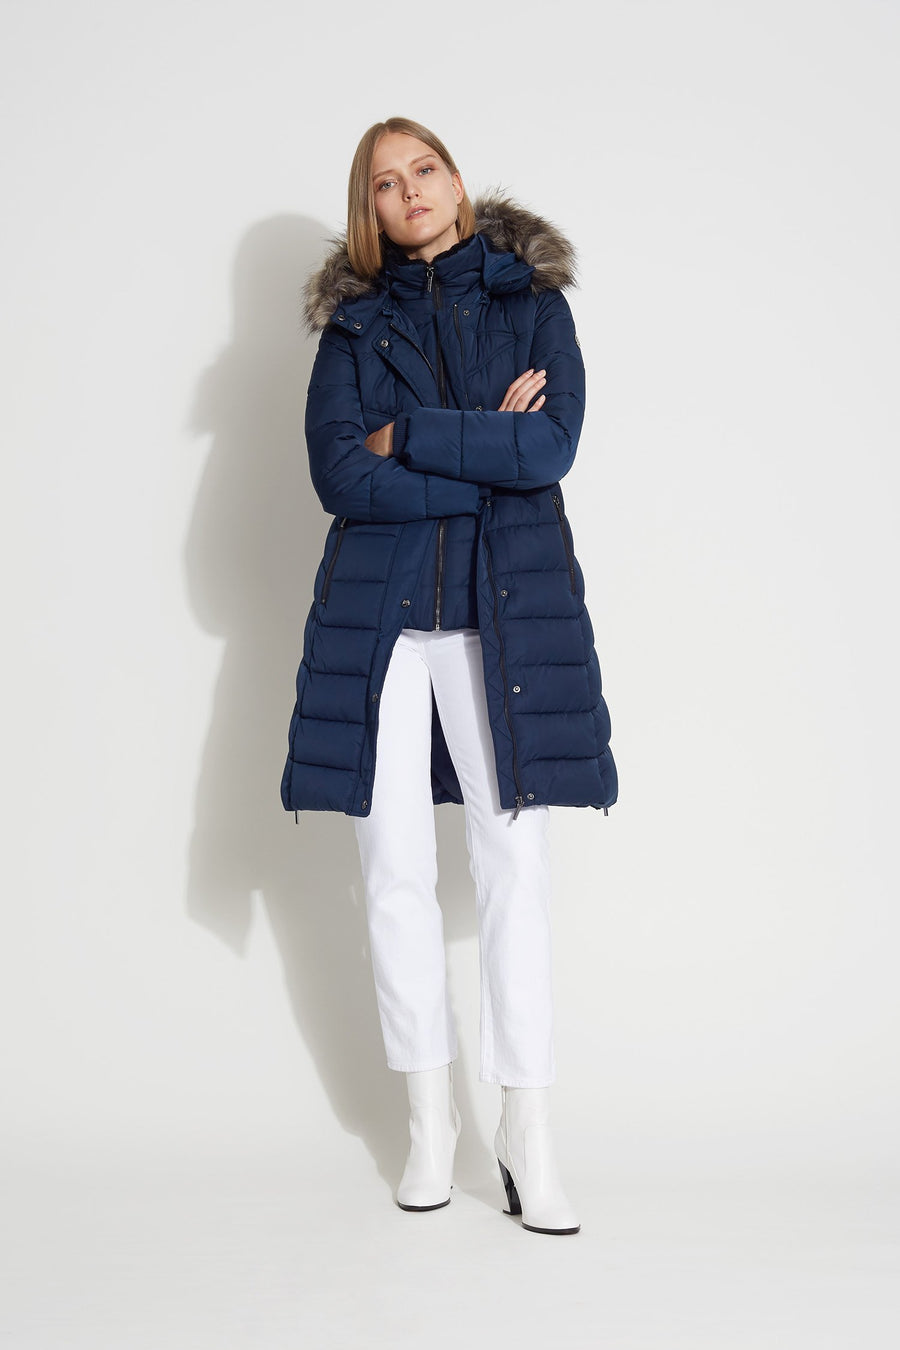 Removable Hooded Puffer - Bernardo Fashions